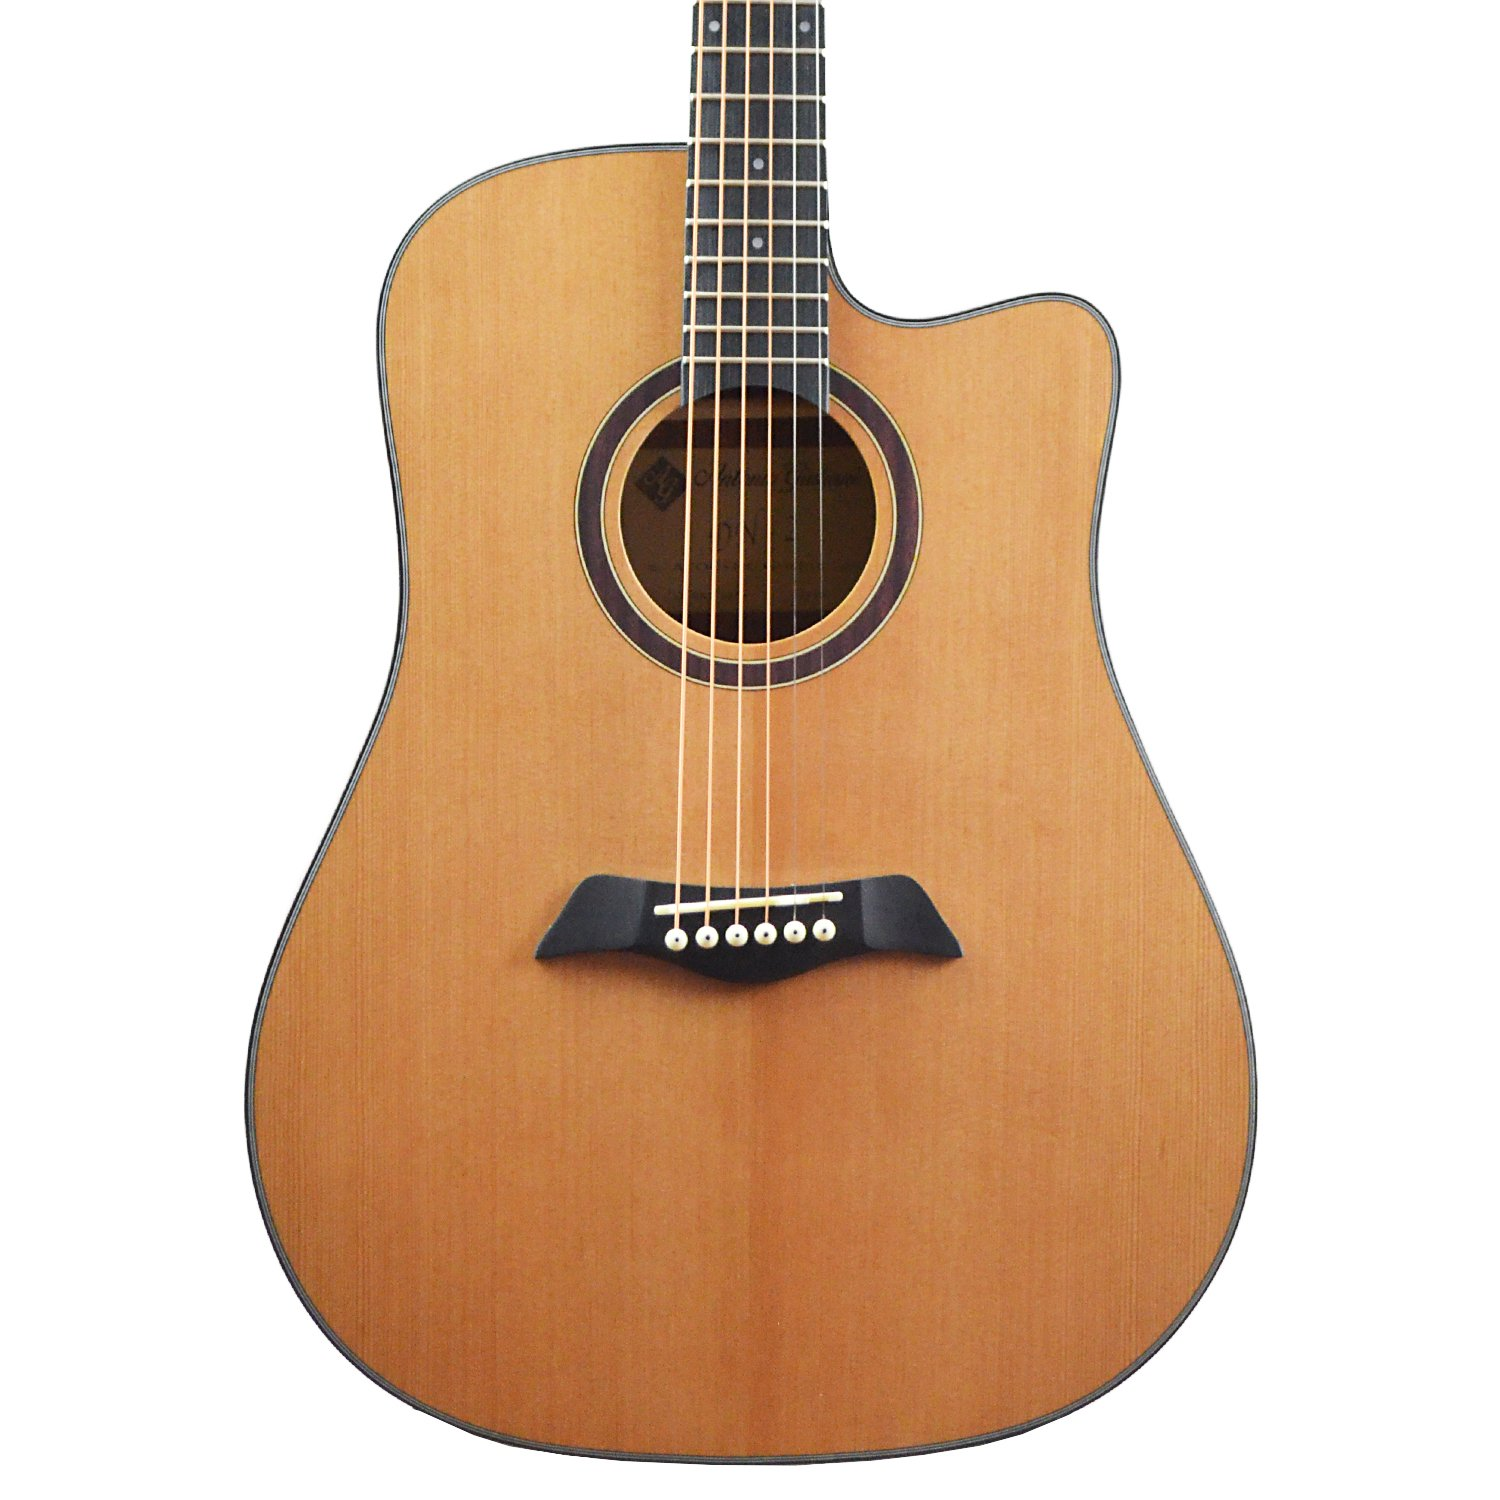 CLEARANCE Antonio Giuliani DN-2 Dreadnought Cutaway Acoustic Guitar Outfit in action